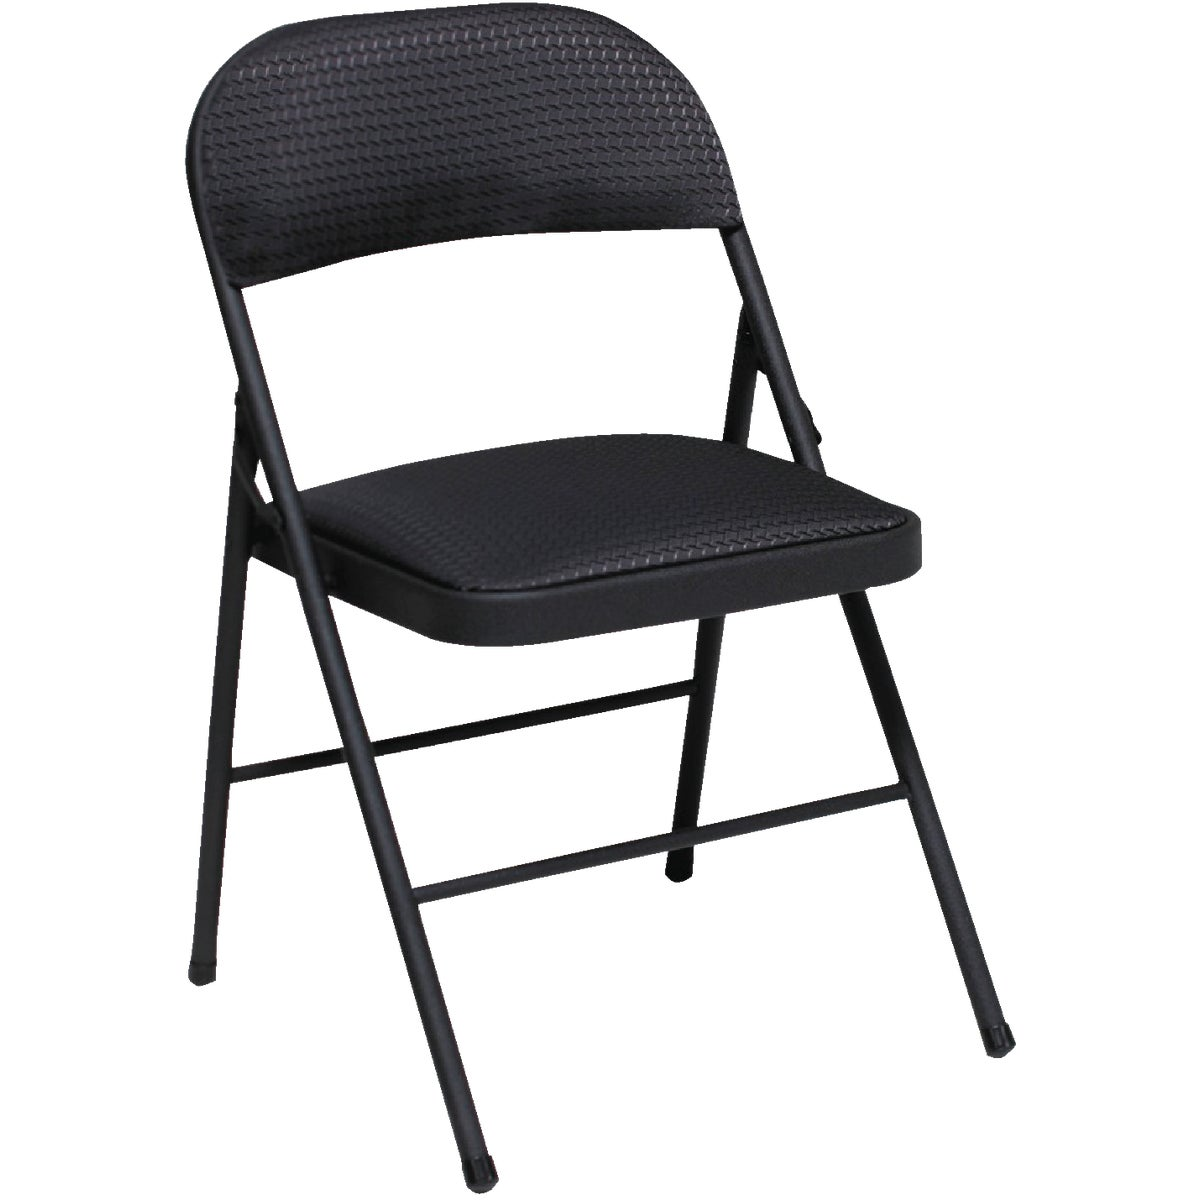 BLK FABRIC FOLDING CHAIR - 14-995-TMS4 by Cosco    J Myalls